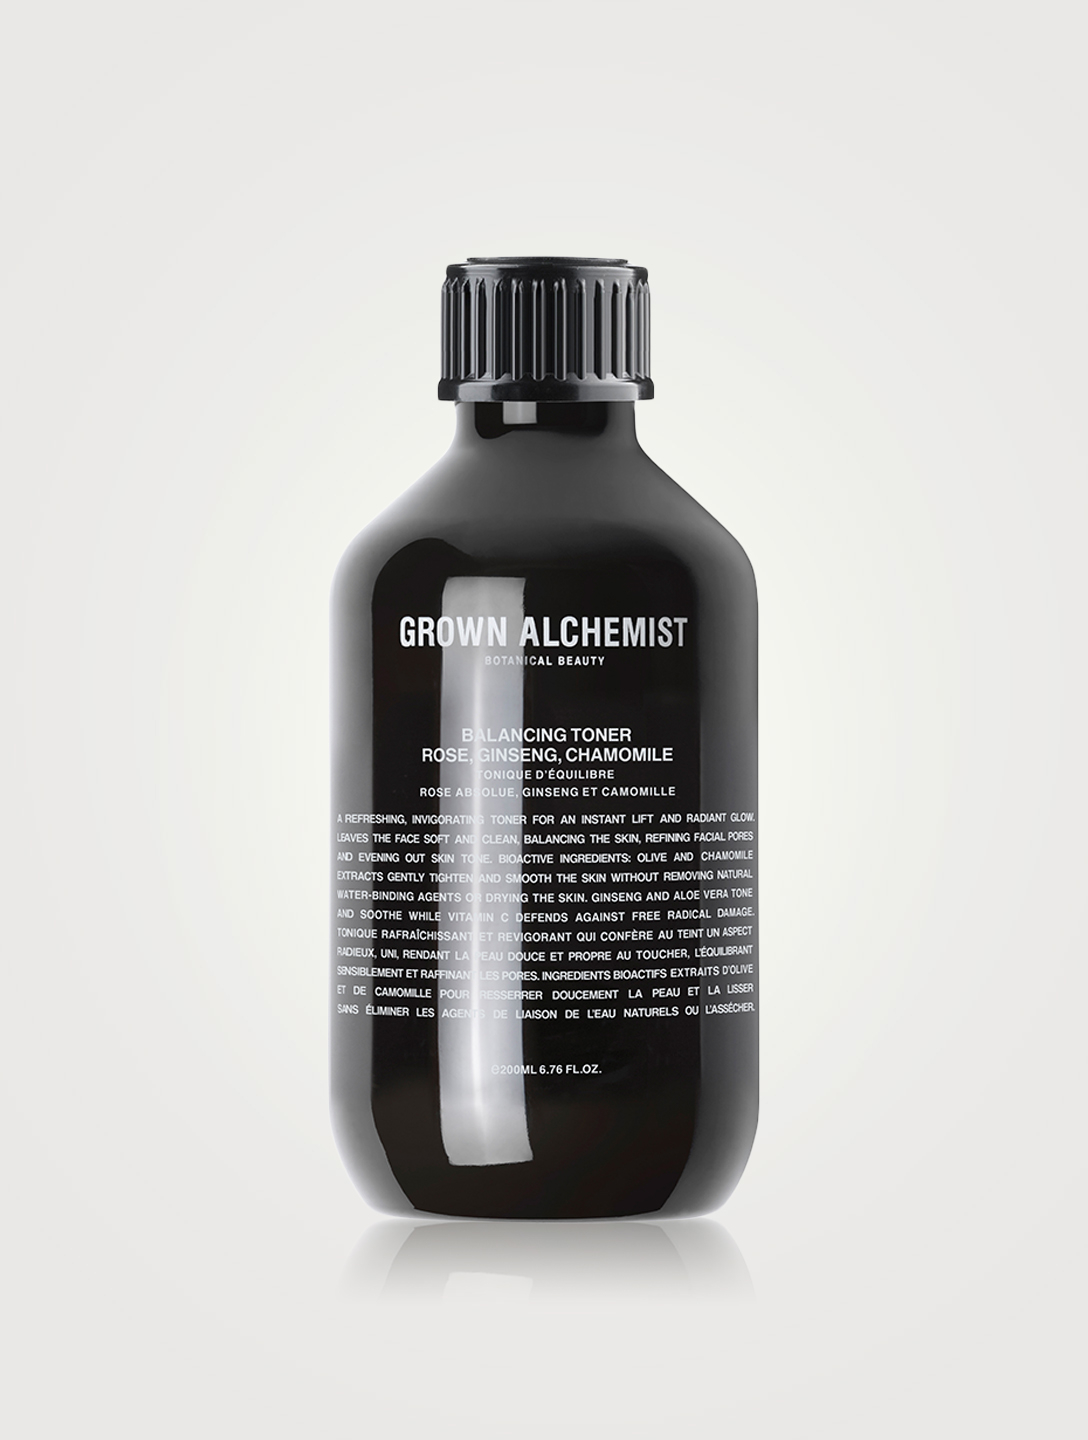 GROWN ALCHEMIST Balancing Toner: Rose, Ginseng & Chamomile Beauty